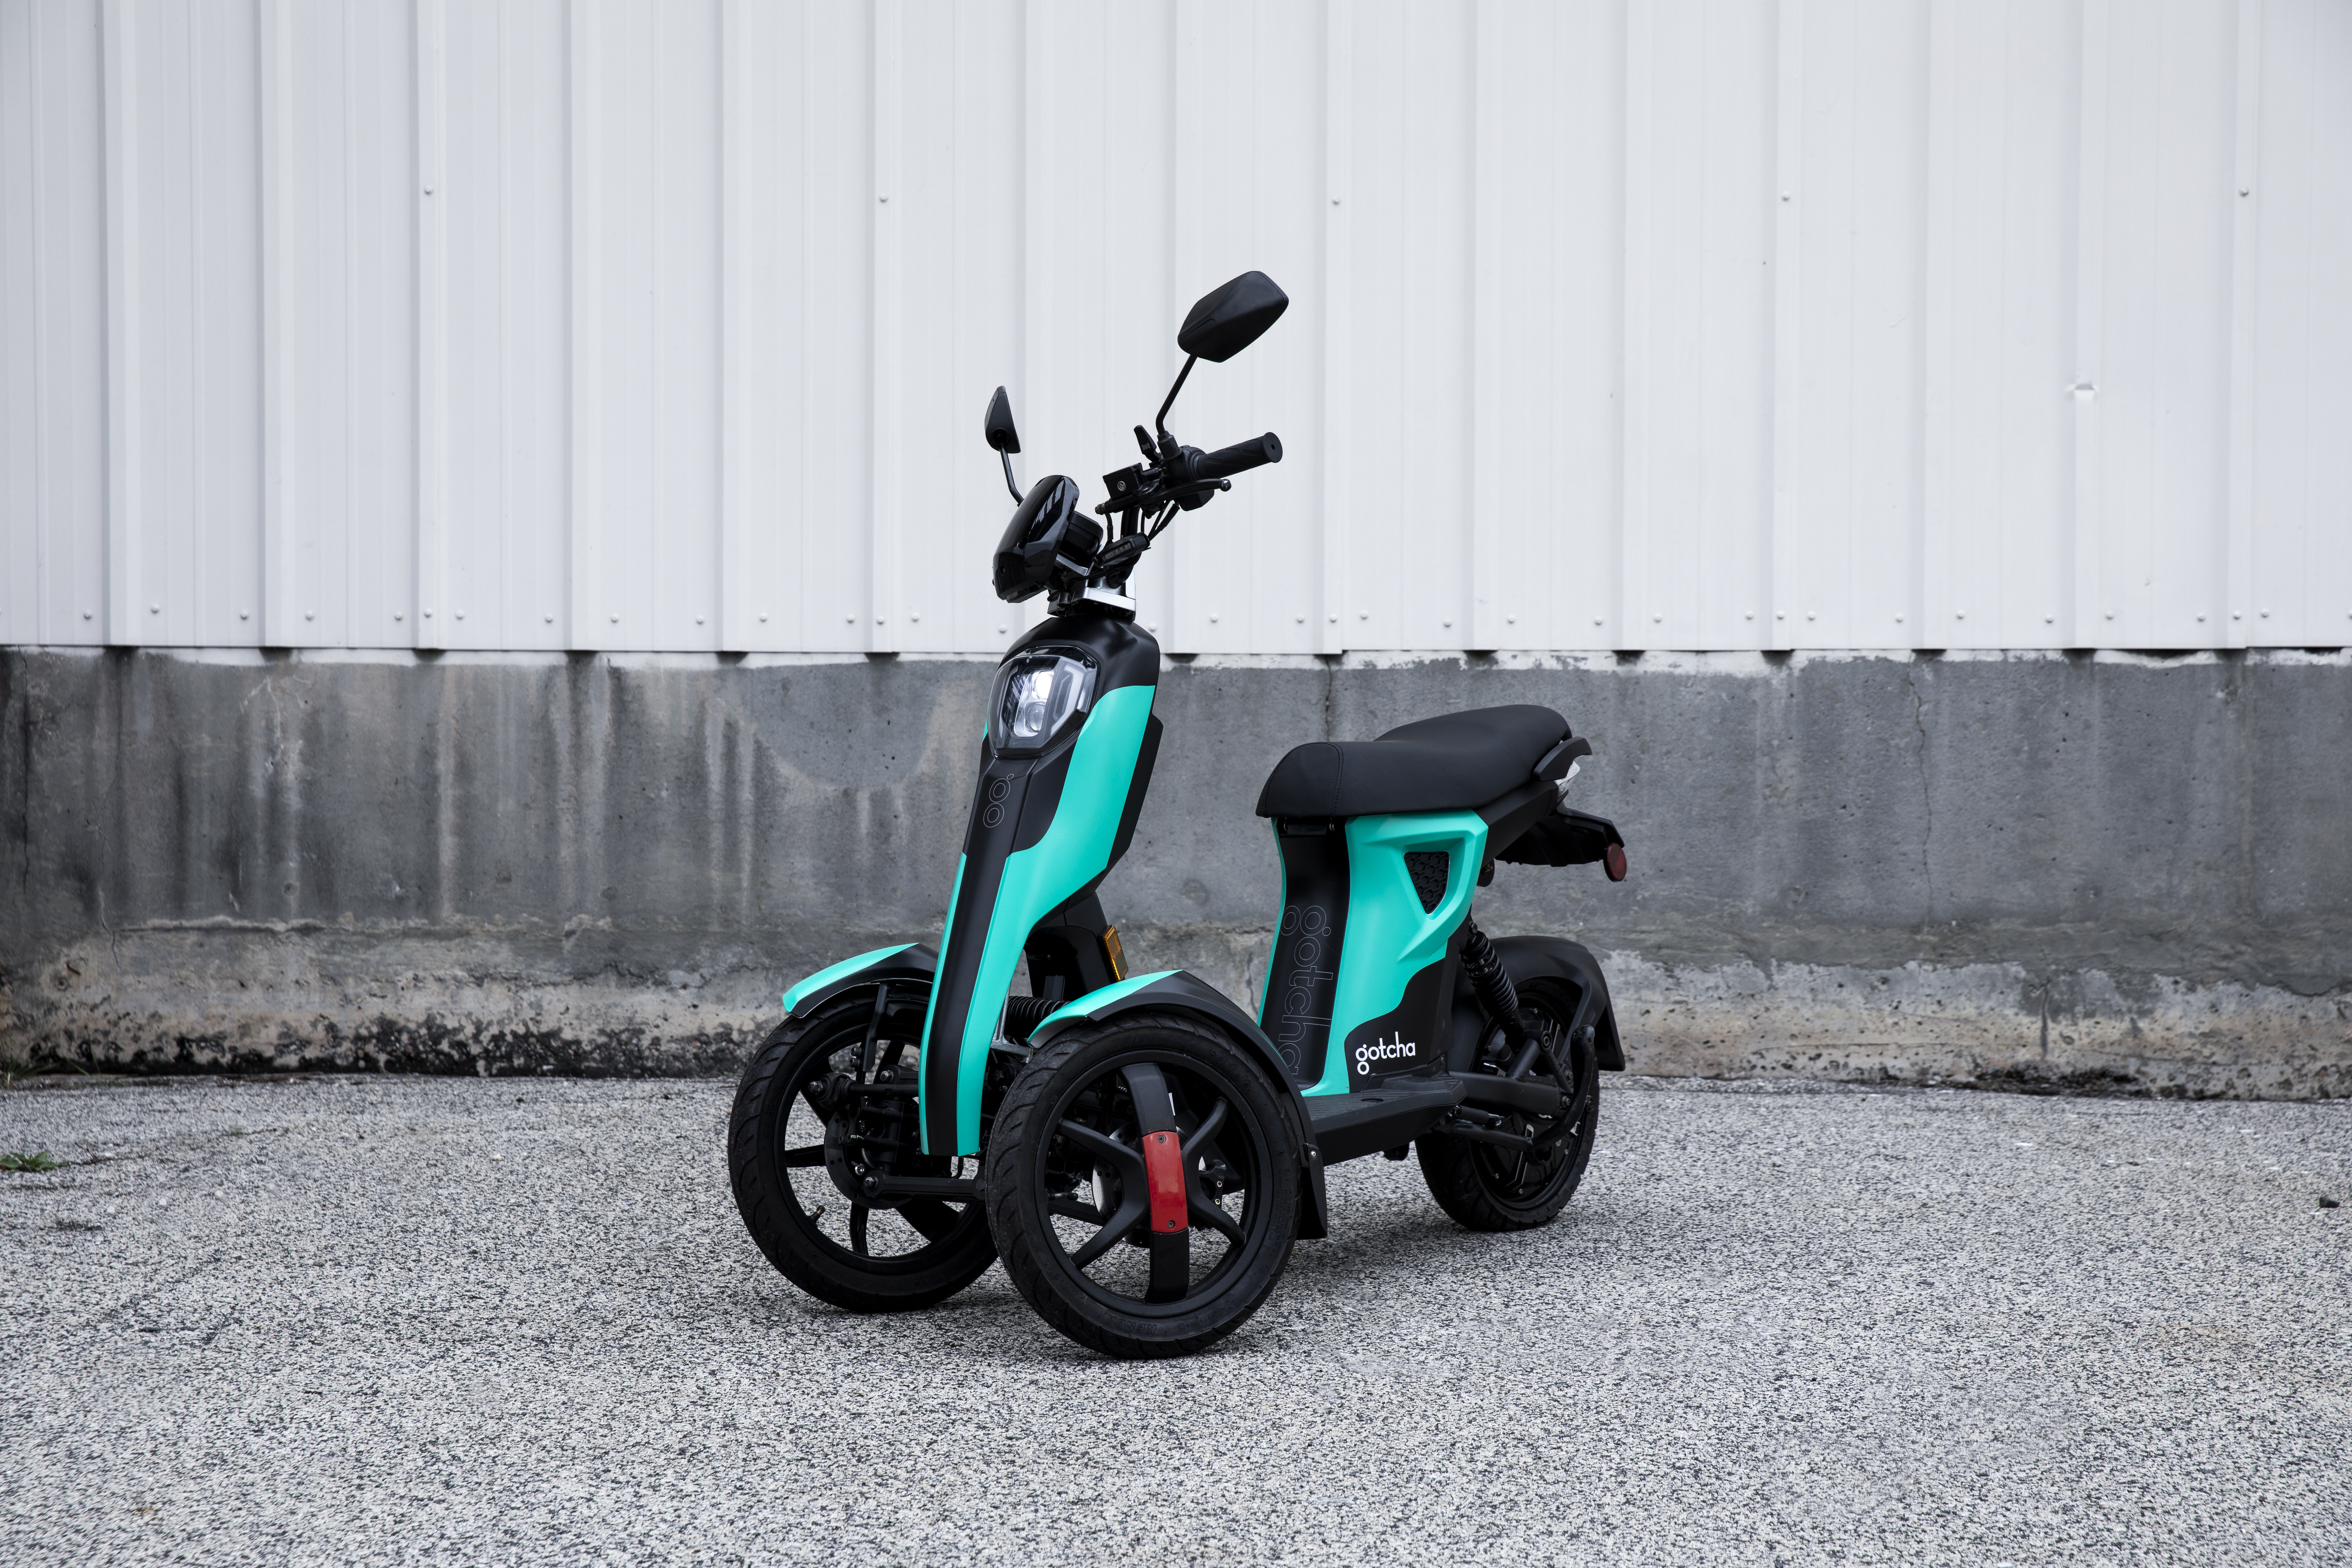 Electric trikes are the new scooters - The Verge